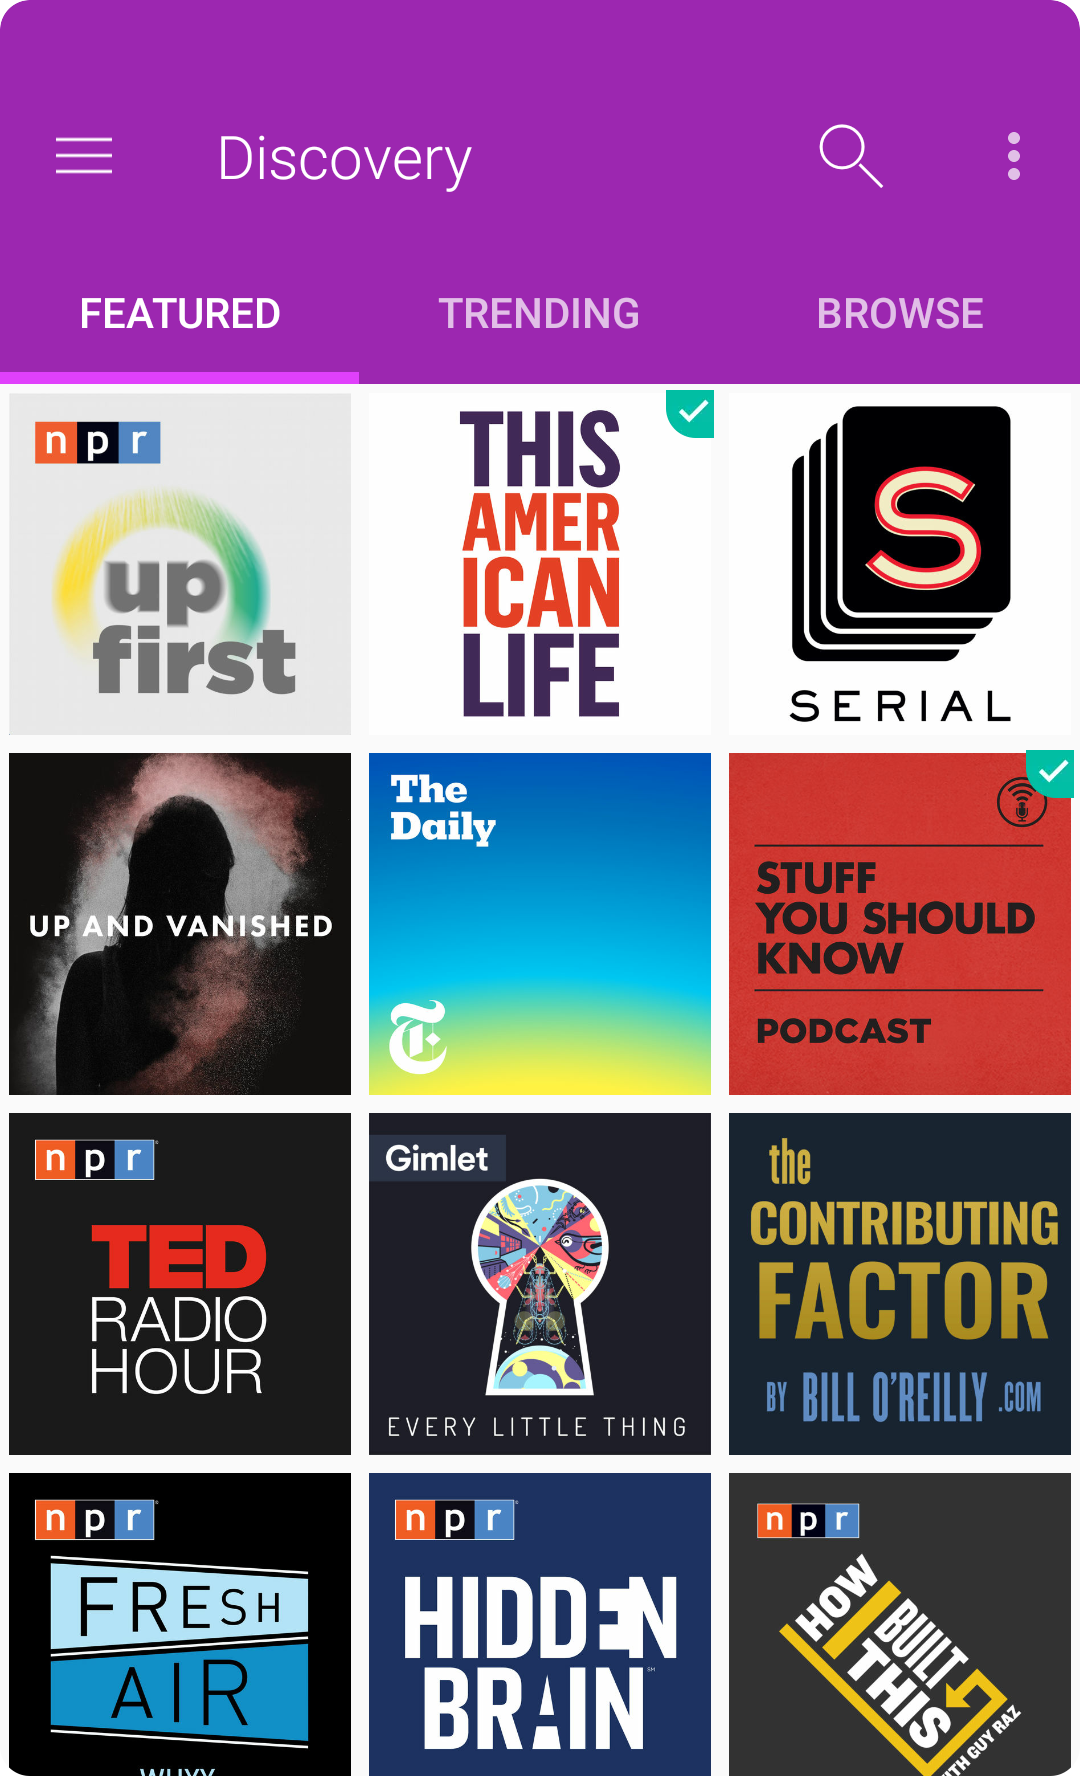 Android App Design - PodcastGuru Podcast Discovery/Featured